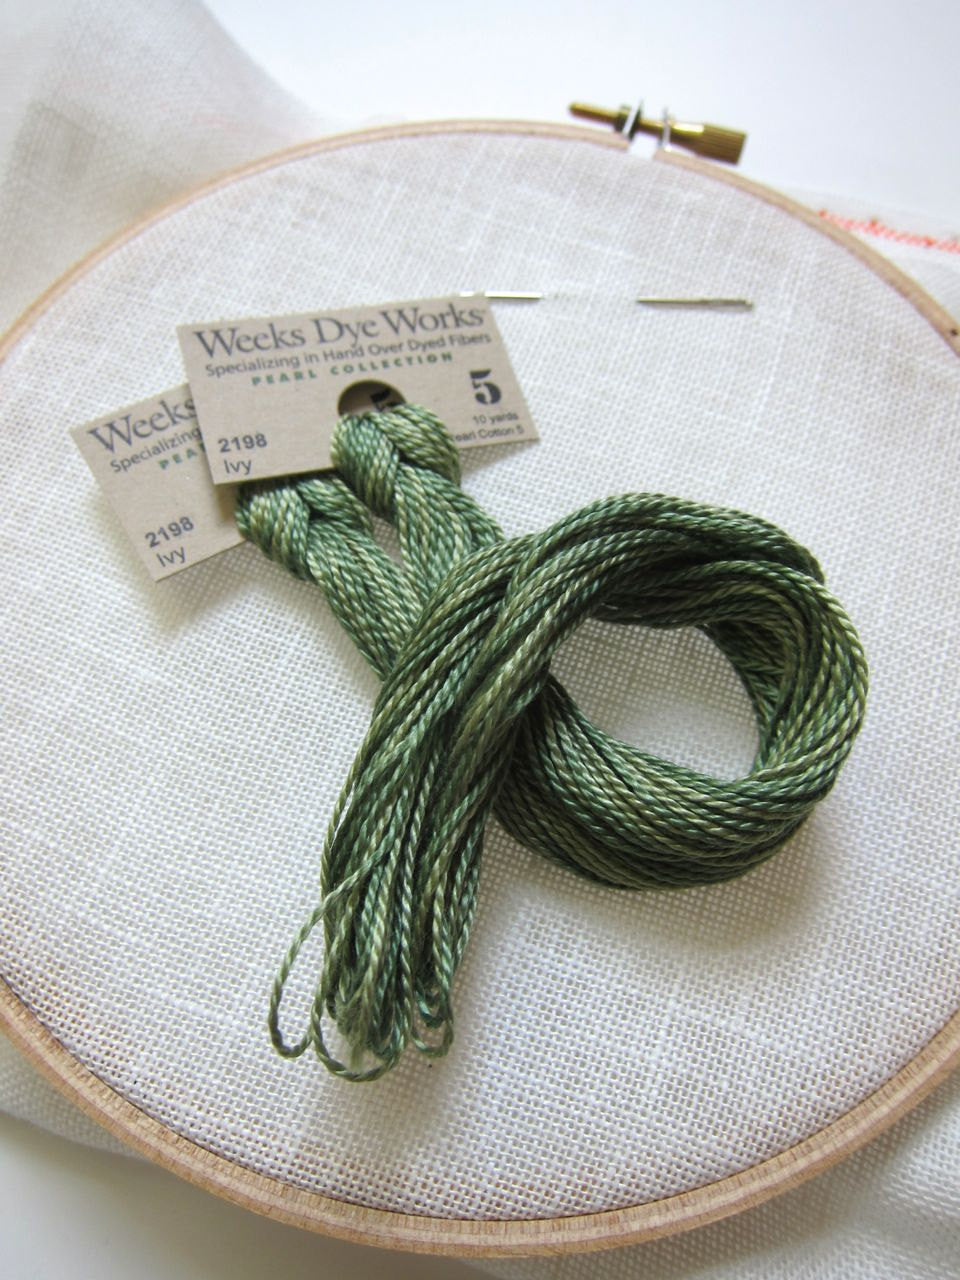 Pearl Cotton Thread - Weeks Dye Works Size 5 Ivy Perle Cotton - Snuggly Monkey